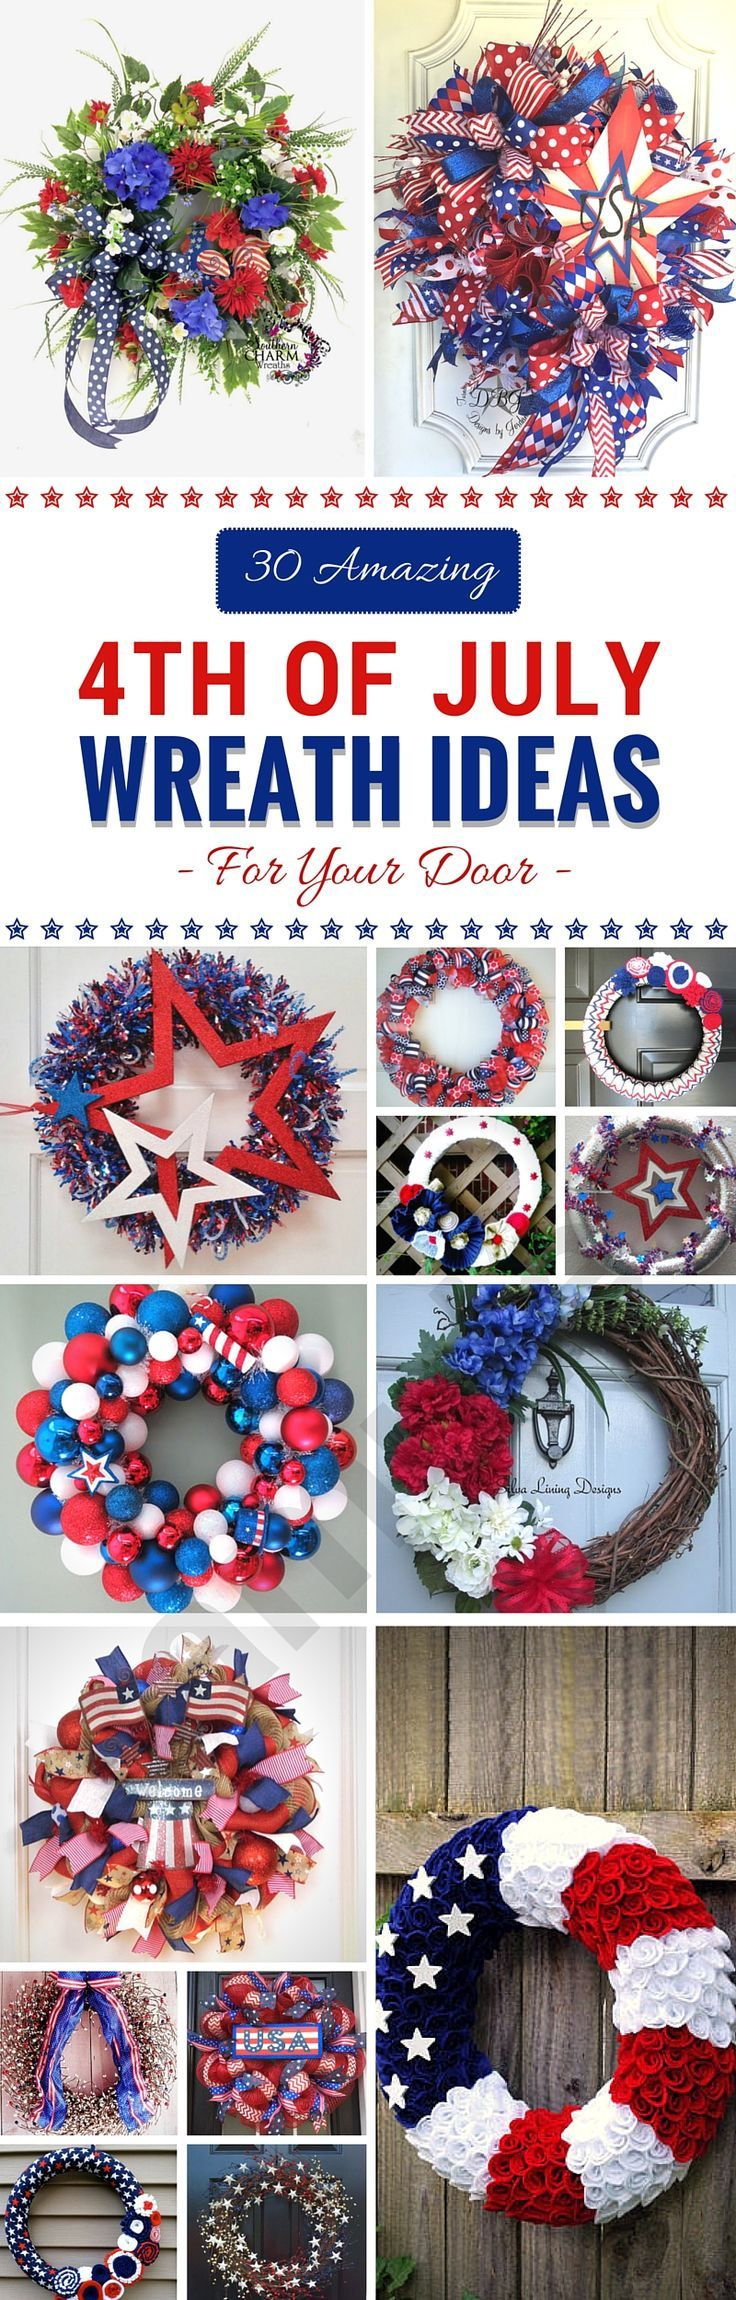 30 Amazing 4th Of July Wreath Ideas For Your Door 4th Of July Wreath 4th Of July 4th Of July Decorations